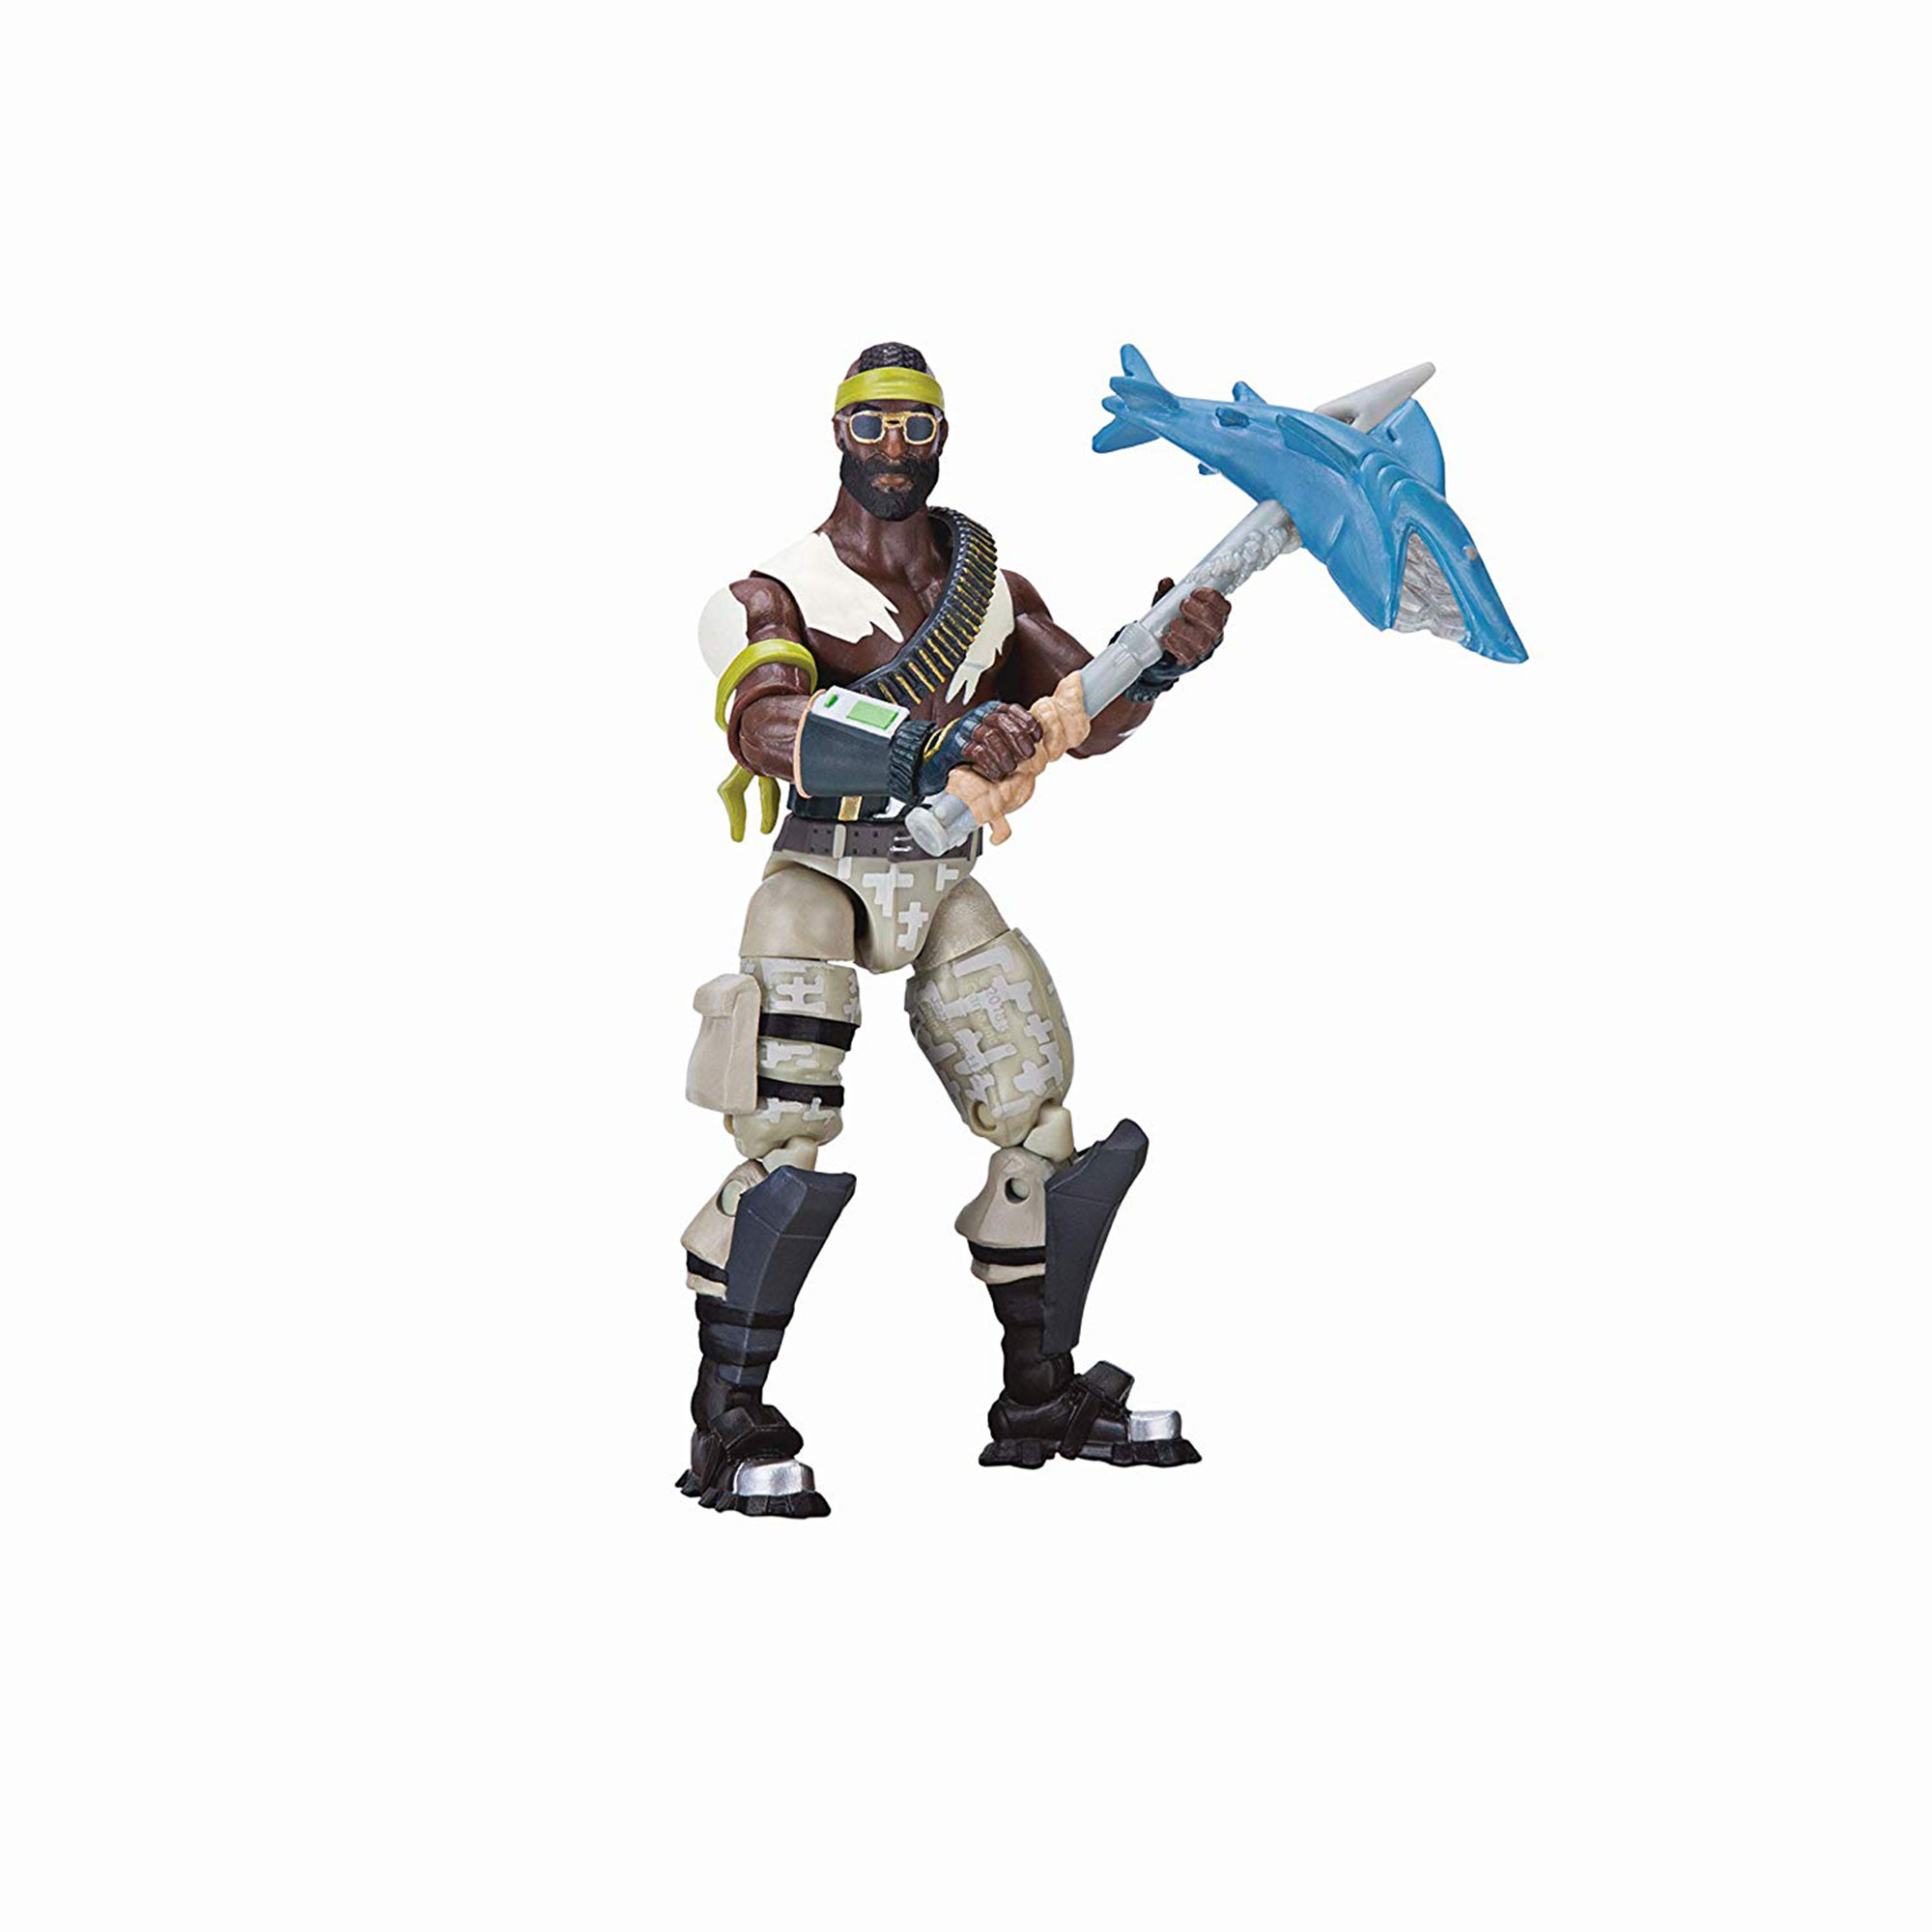 Fortnite Raptor Solo Mode Action Figure